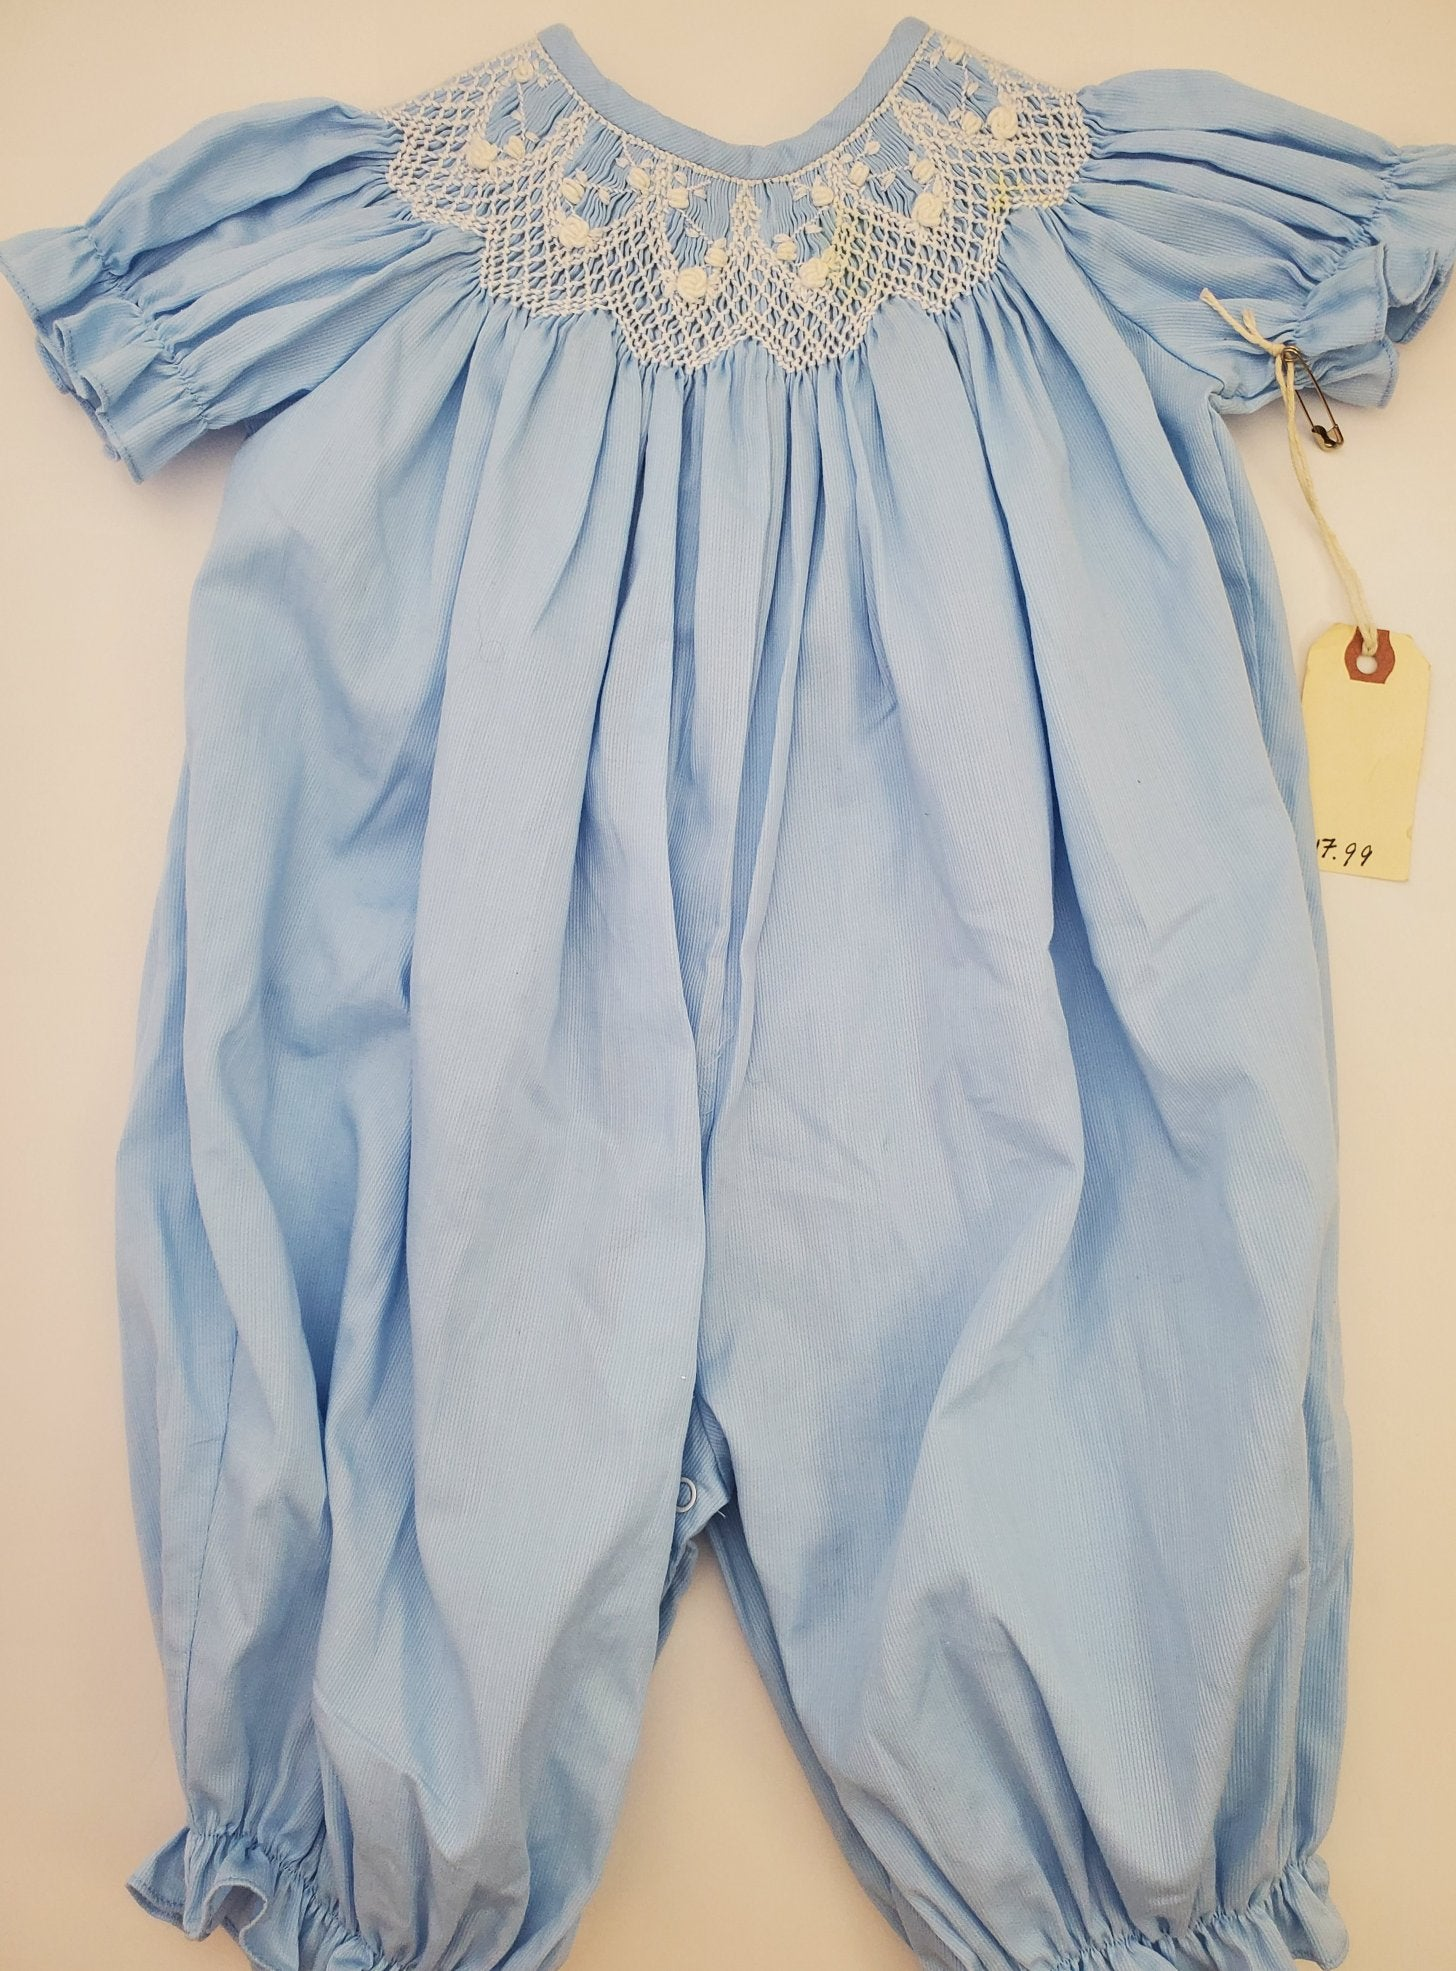 Resale 6 m Delaney Smocked Blue Romper with Lace Accents